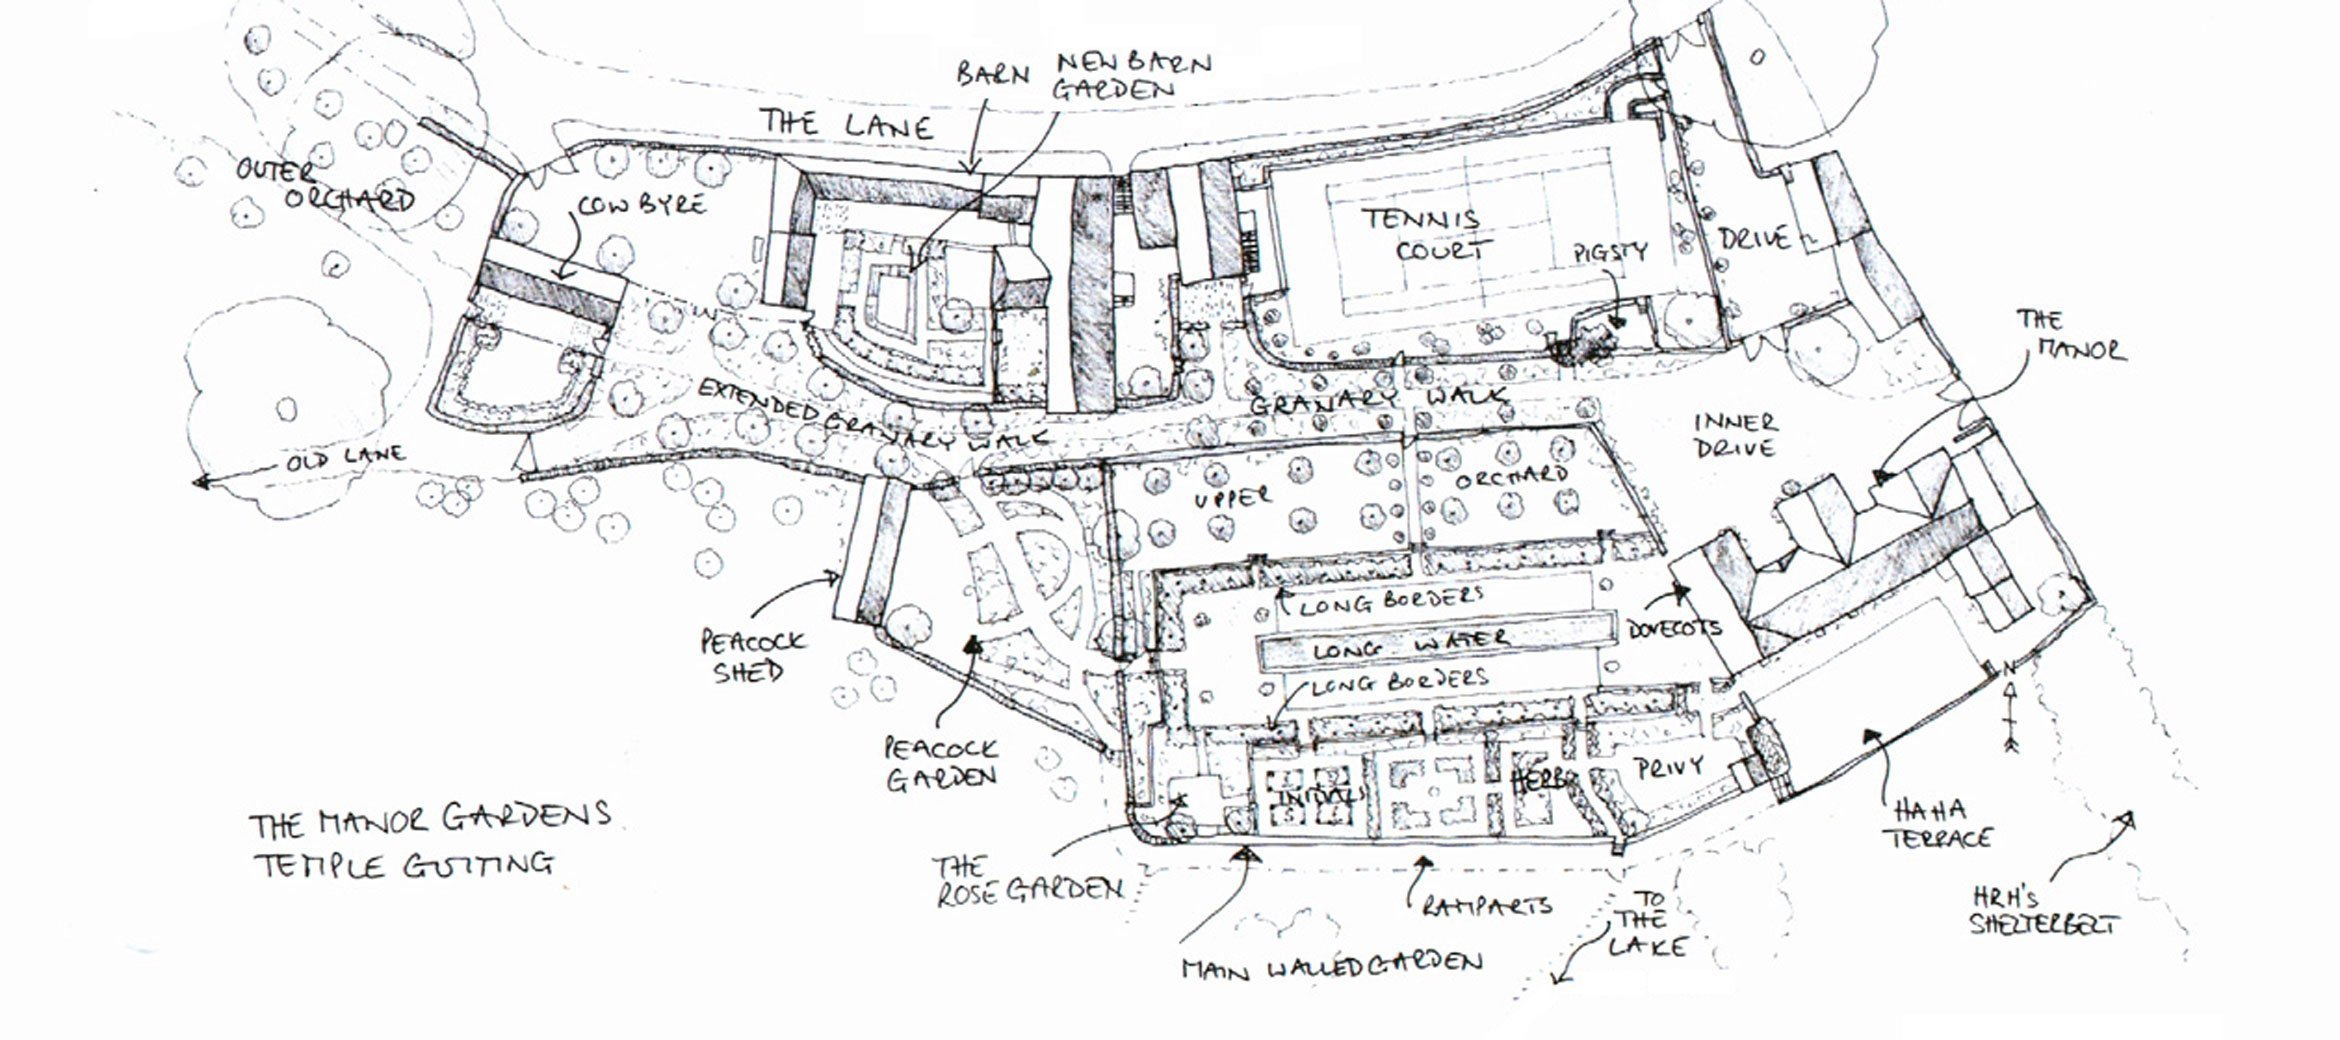 View the floorplan of Temple Guiting Barn